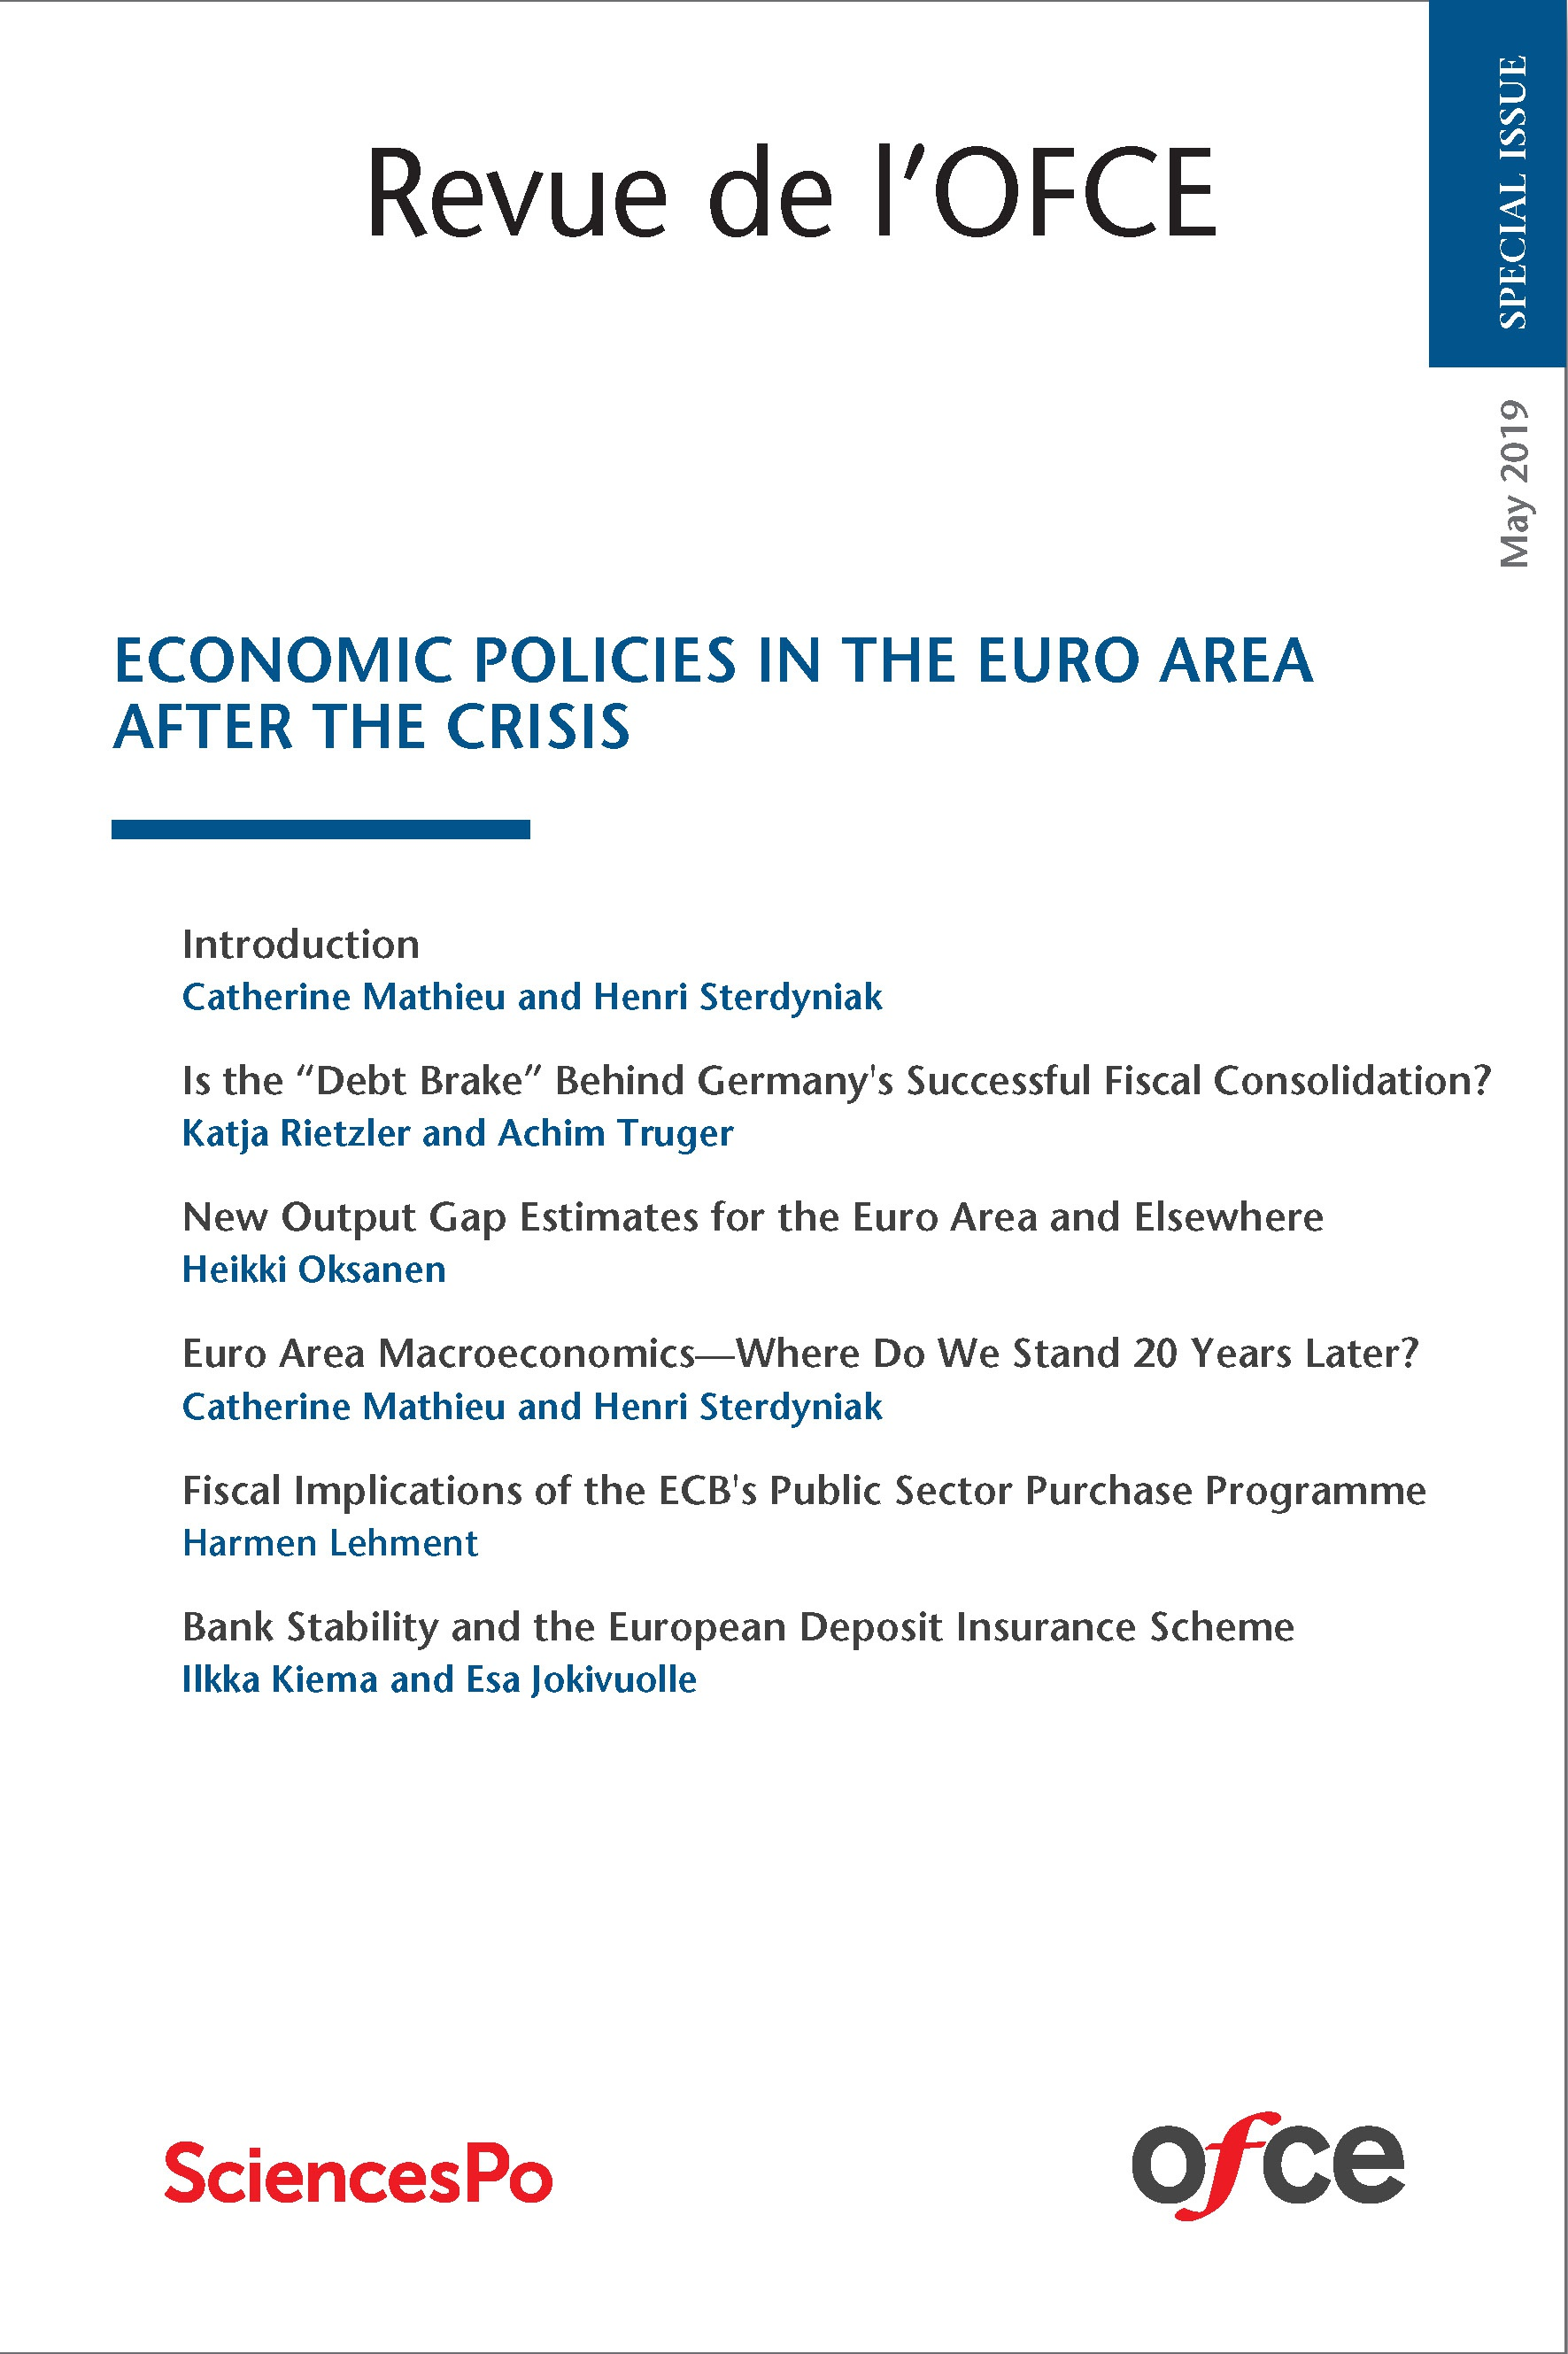 Economic Policies in the Euro Area after the Crisis | Cairn info